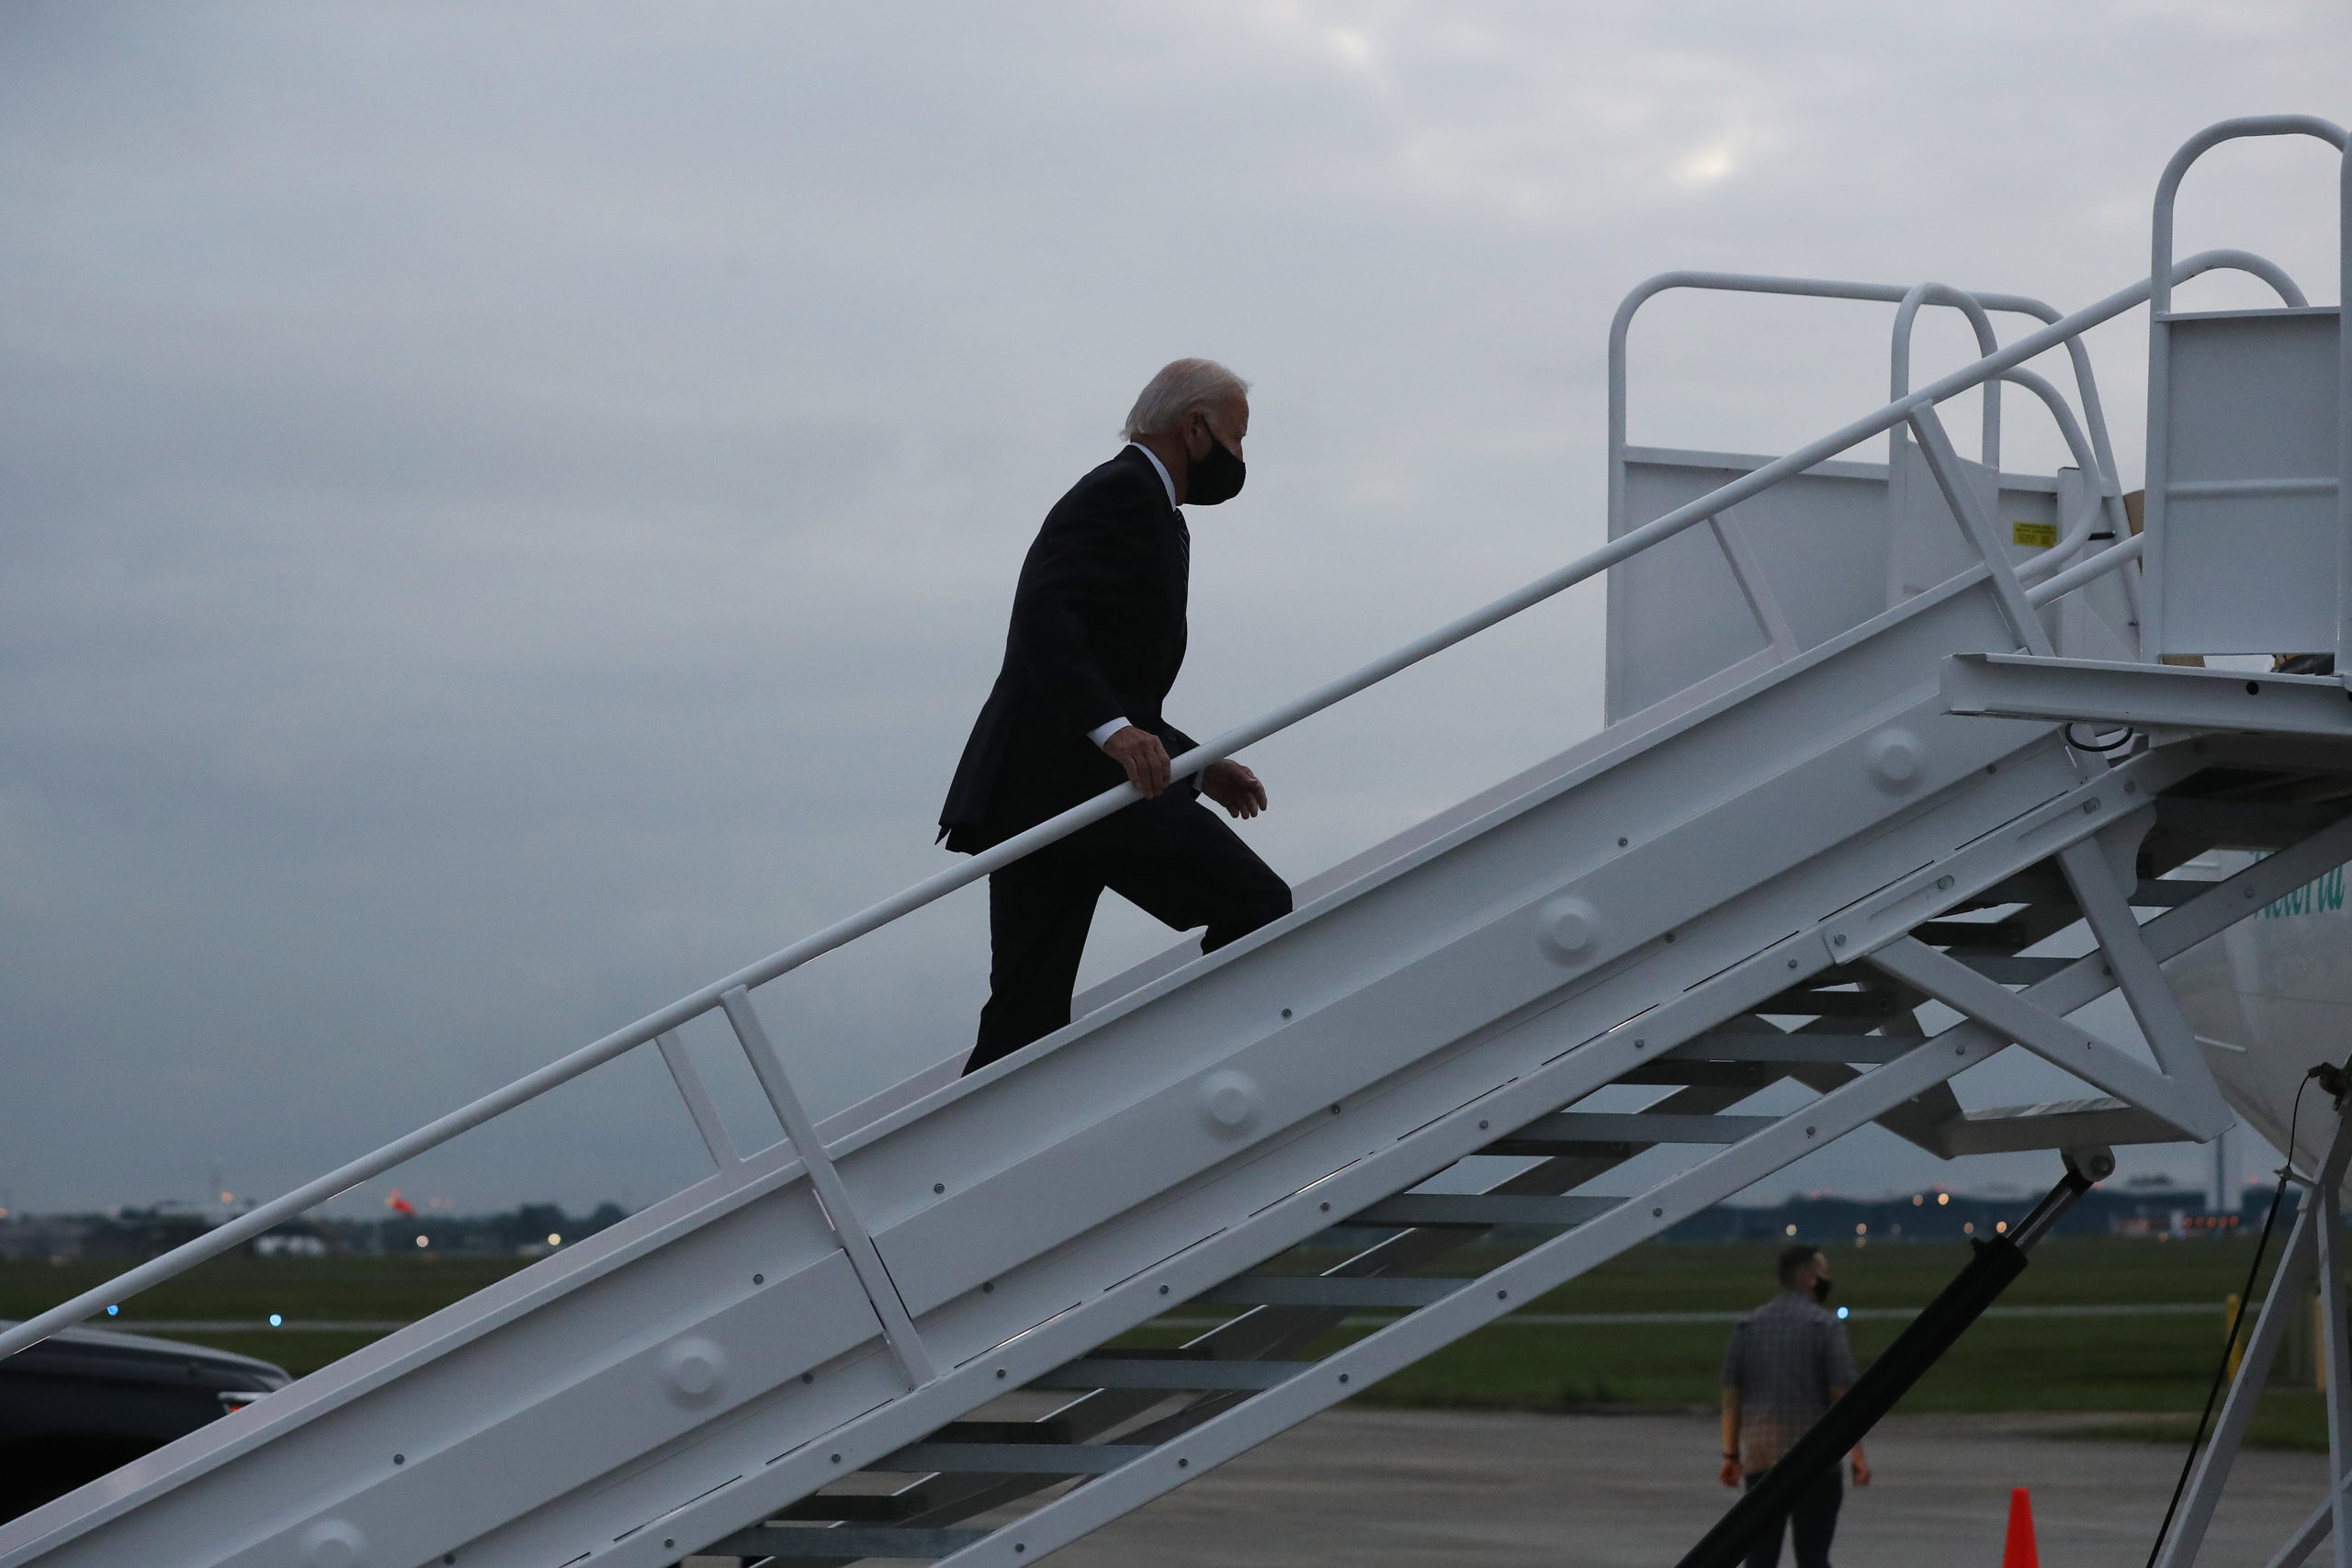 Democratic presidential nominee and former Vice President Joe Biden boards an airplane at New Castle County Airport September 11, 2020 in New Castle, Delaware. (Chip Somodevilla/Getty Images)